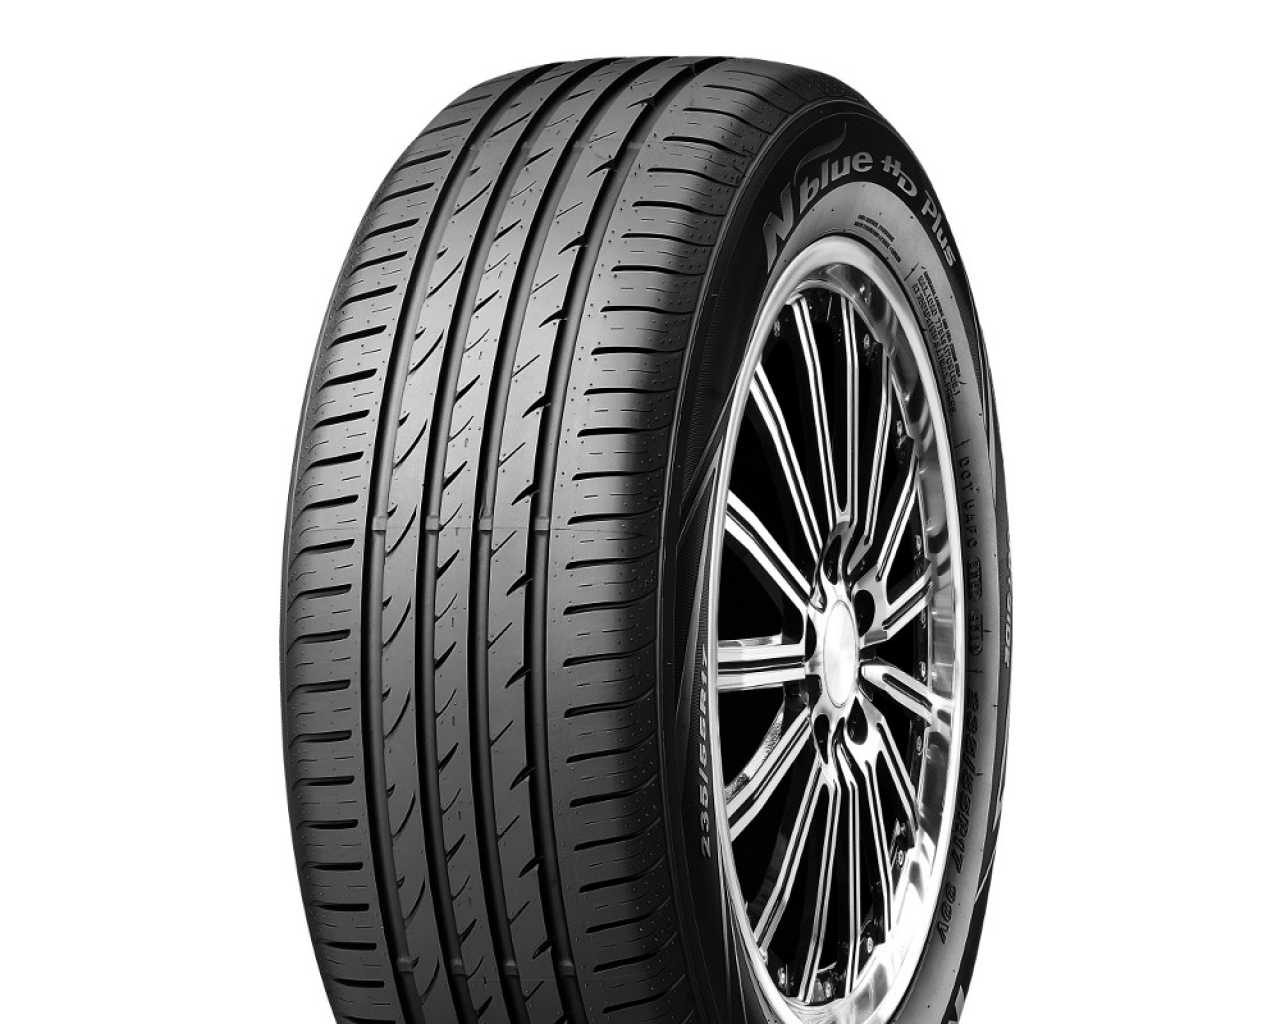 195 60r14 nexen n 39 blue hd plus buy online at agrigear ireland 39 s tyre and wheel specialists. Black Bedroom Furniture Sets. Home Design Ideas